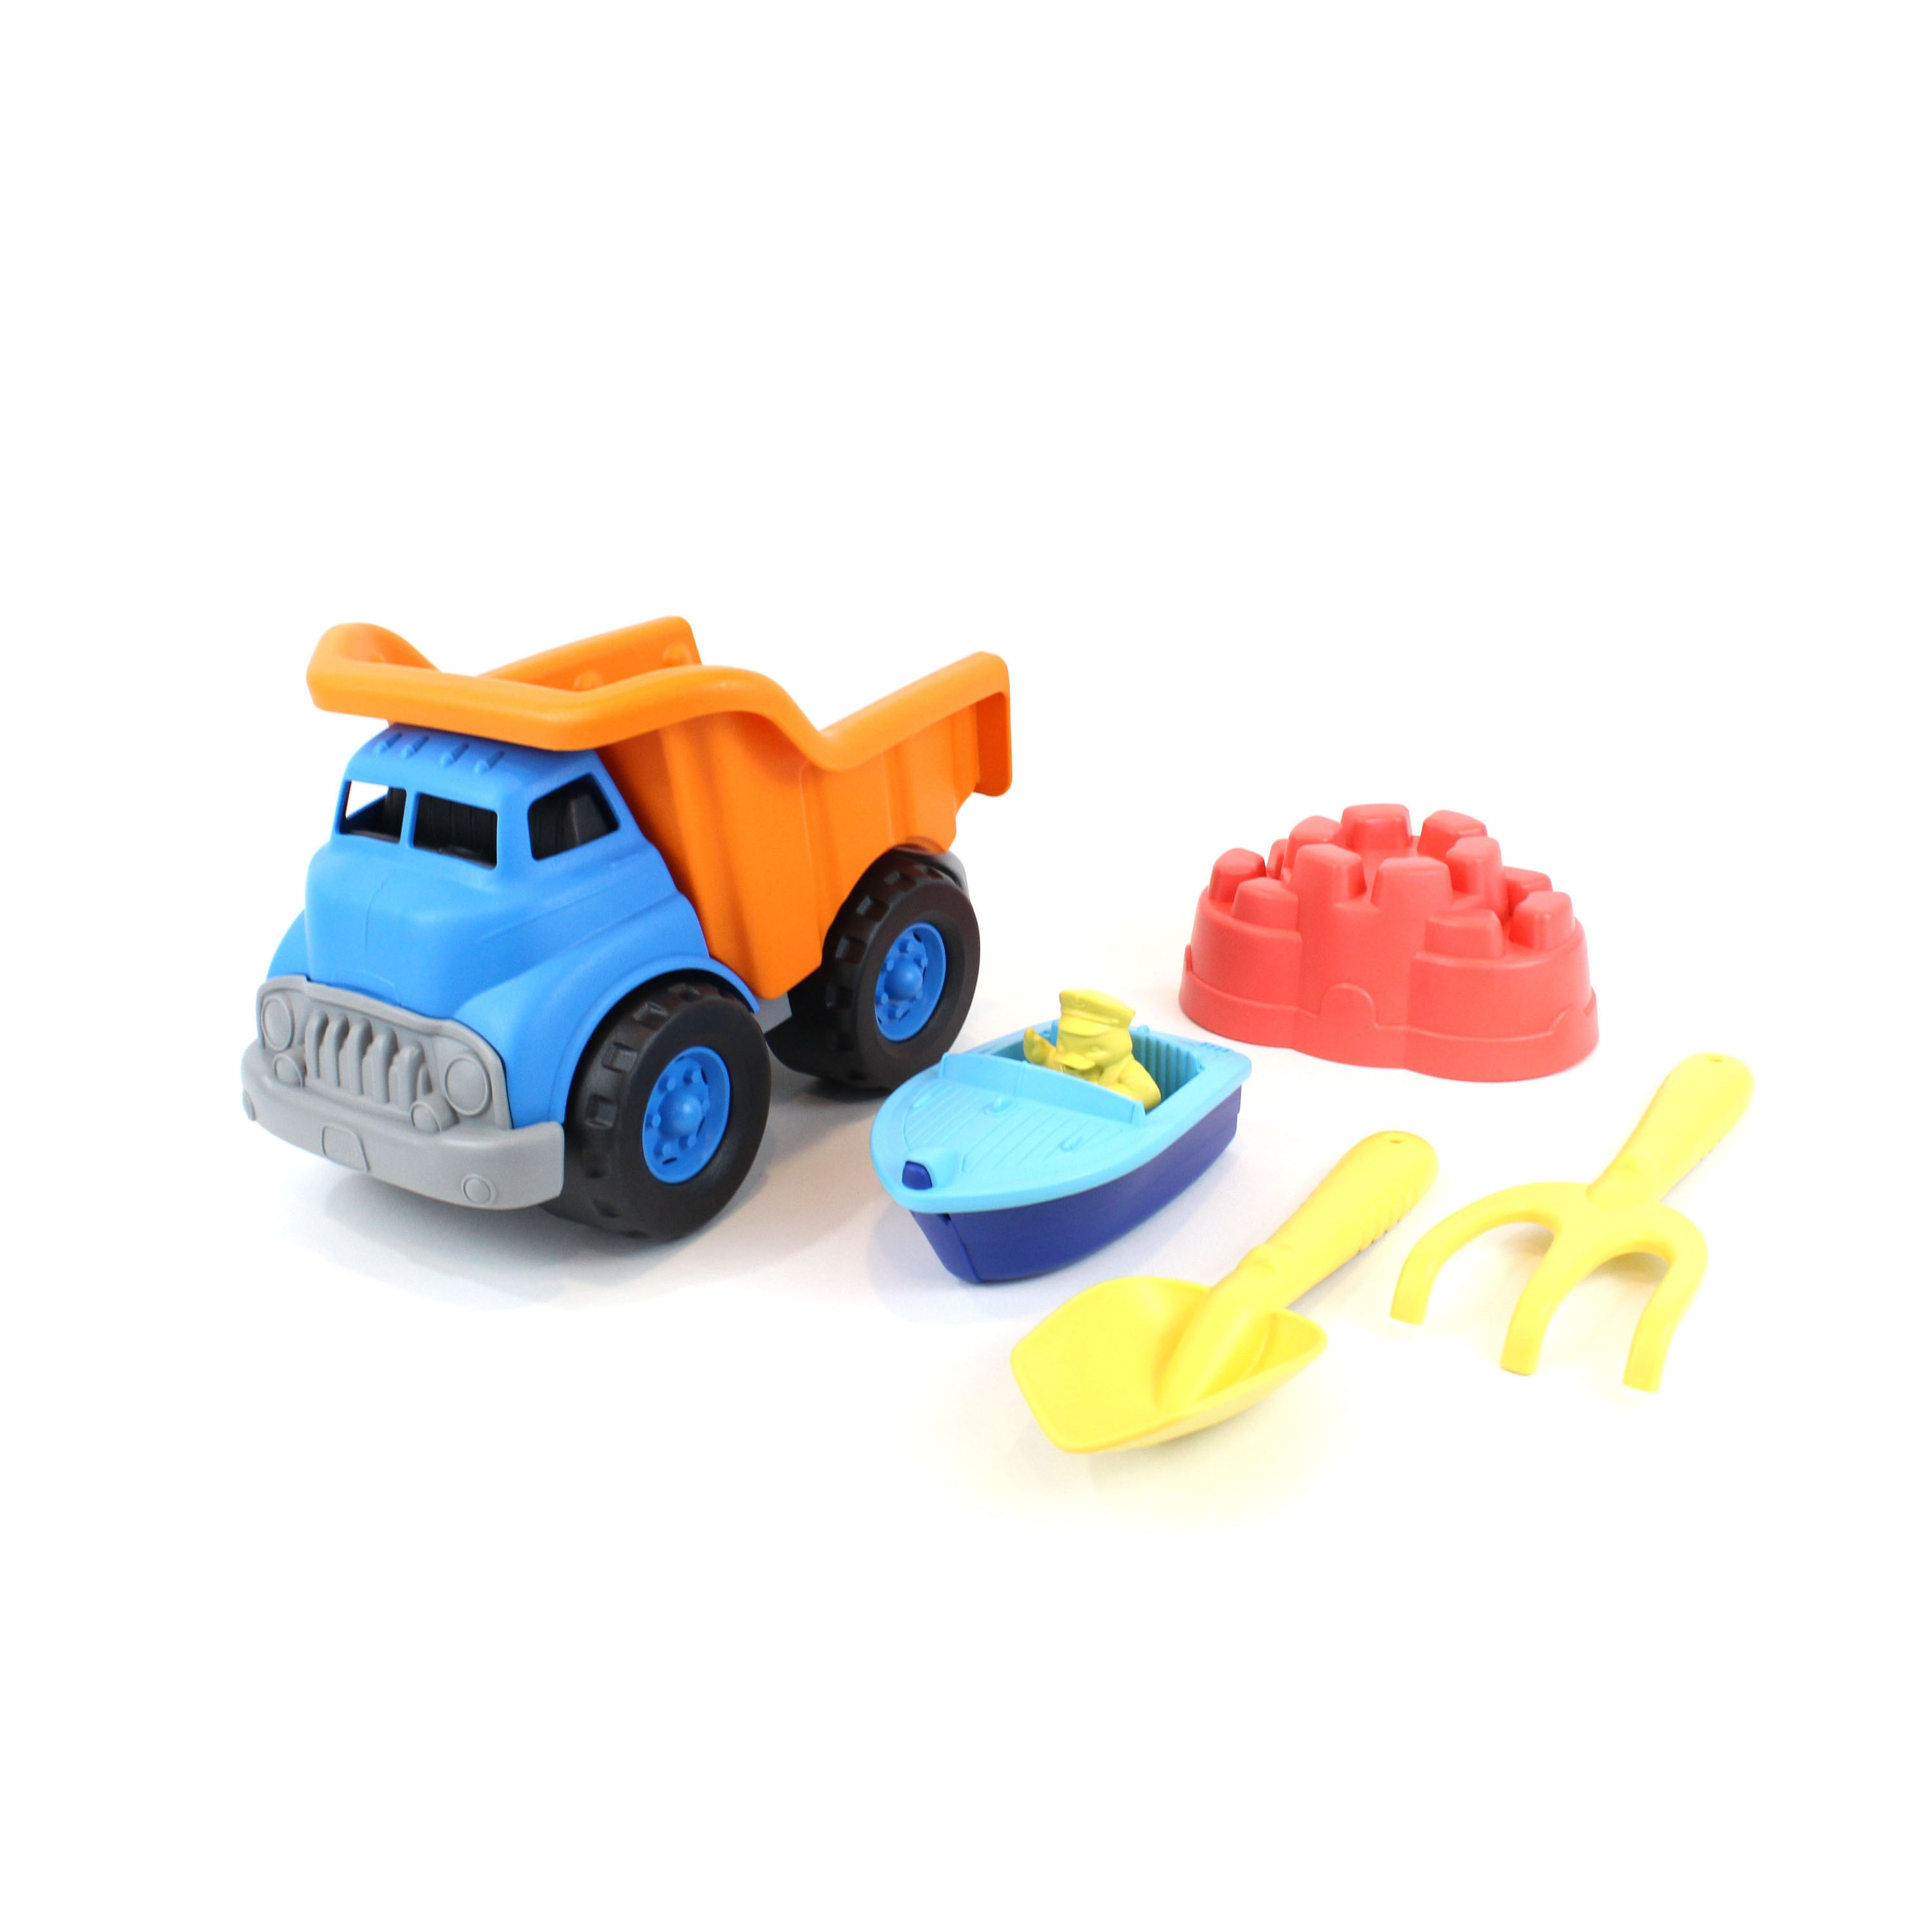 Green Sand & Water Deluxe Play Set: Dump Truck w/ Boat, S...